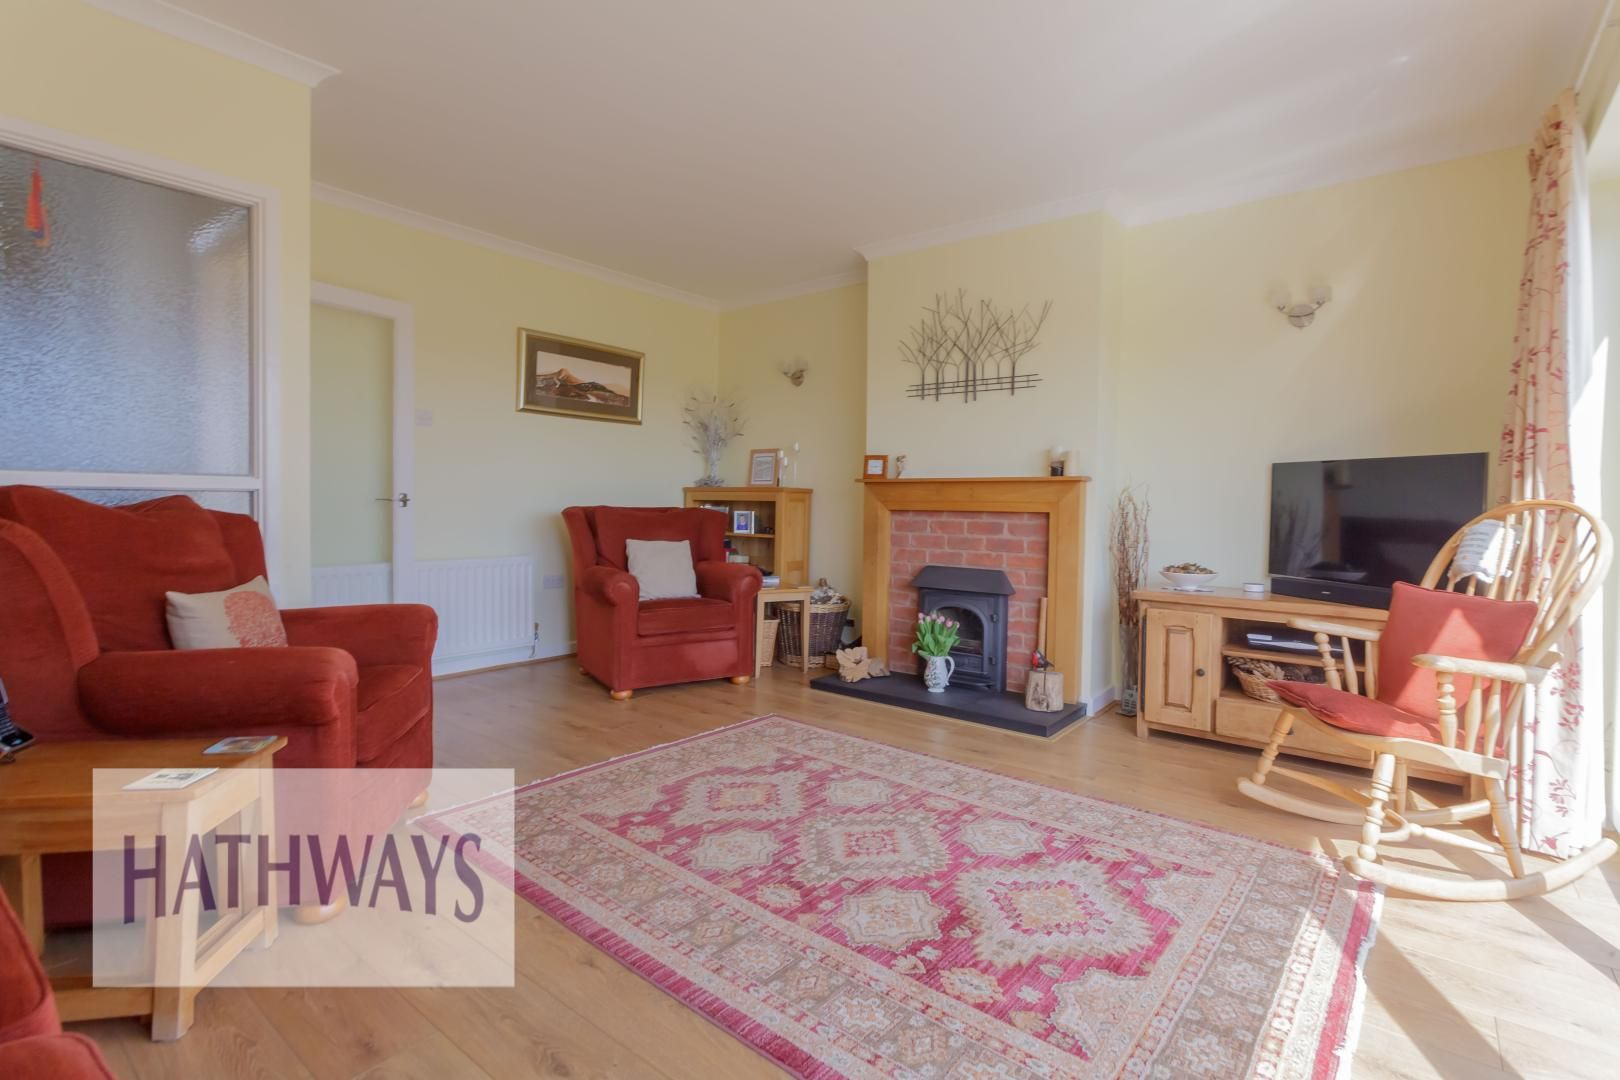 4 bed house for sale in Greenfield 21